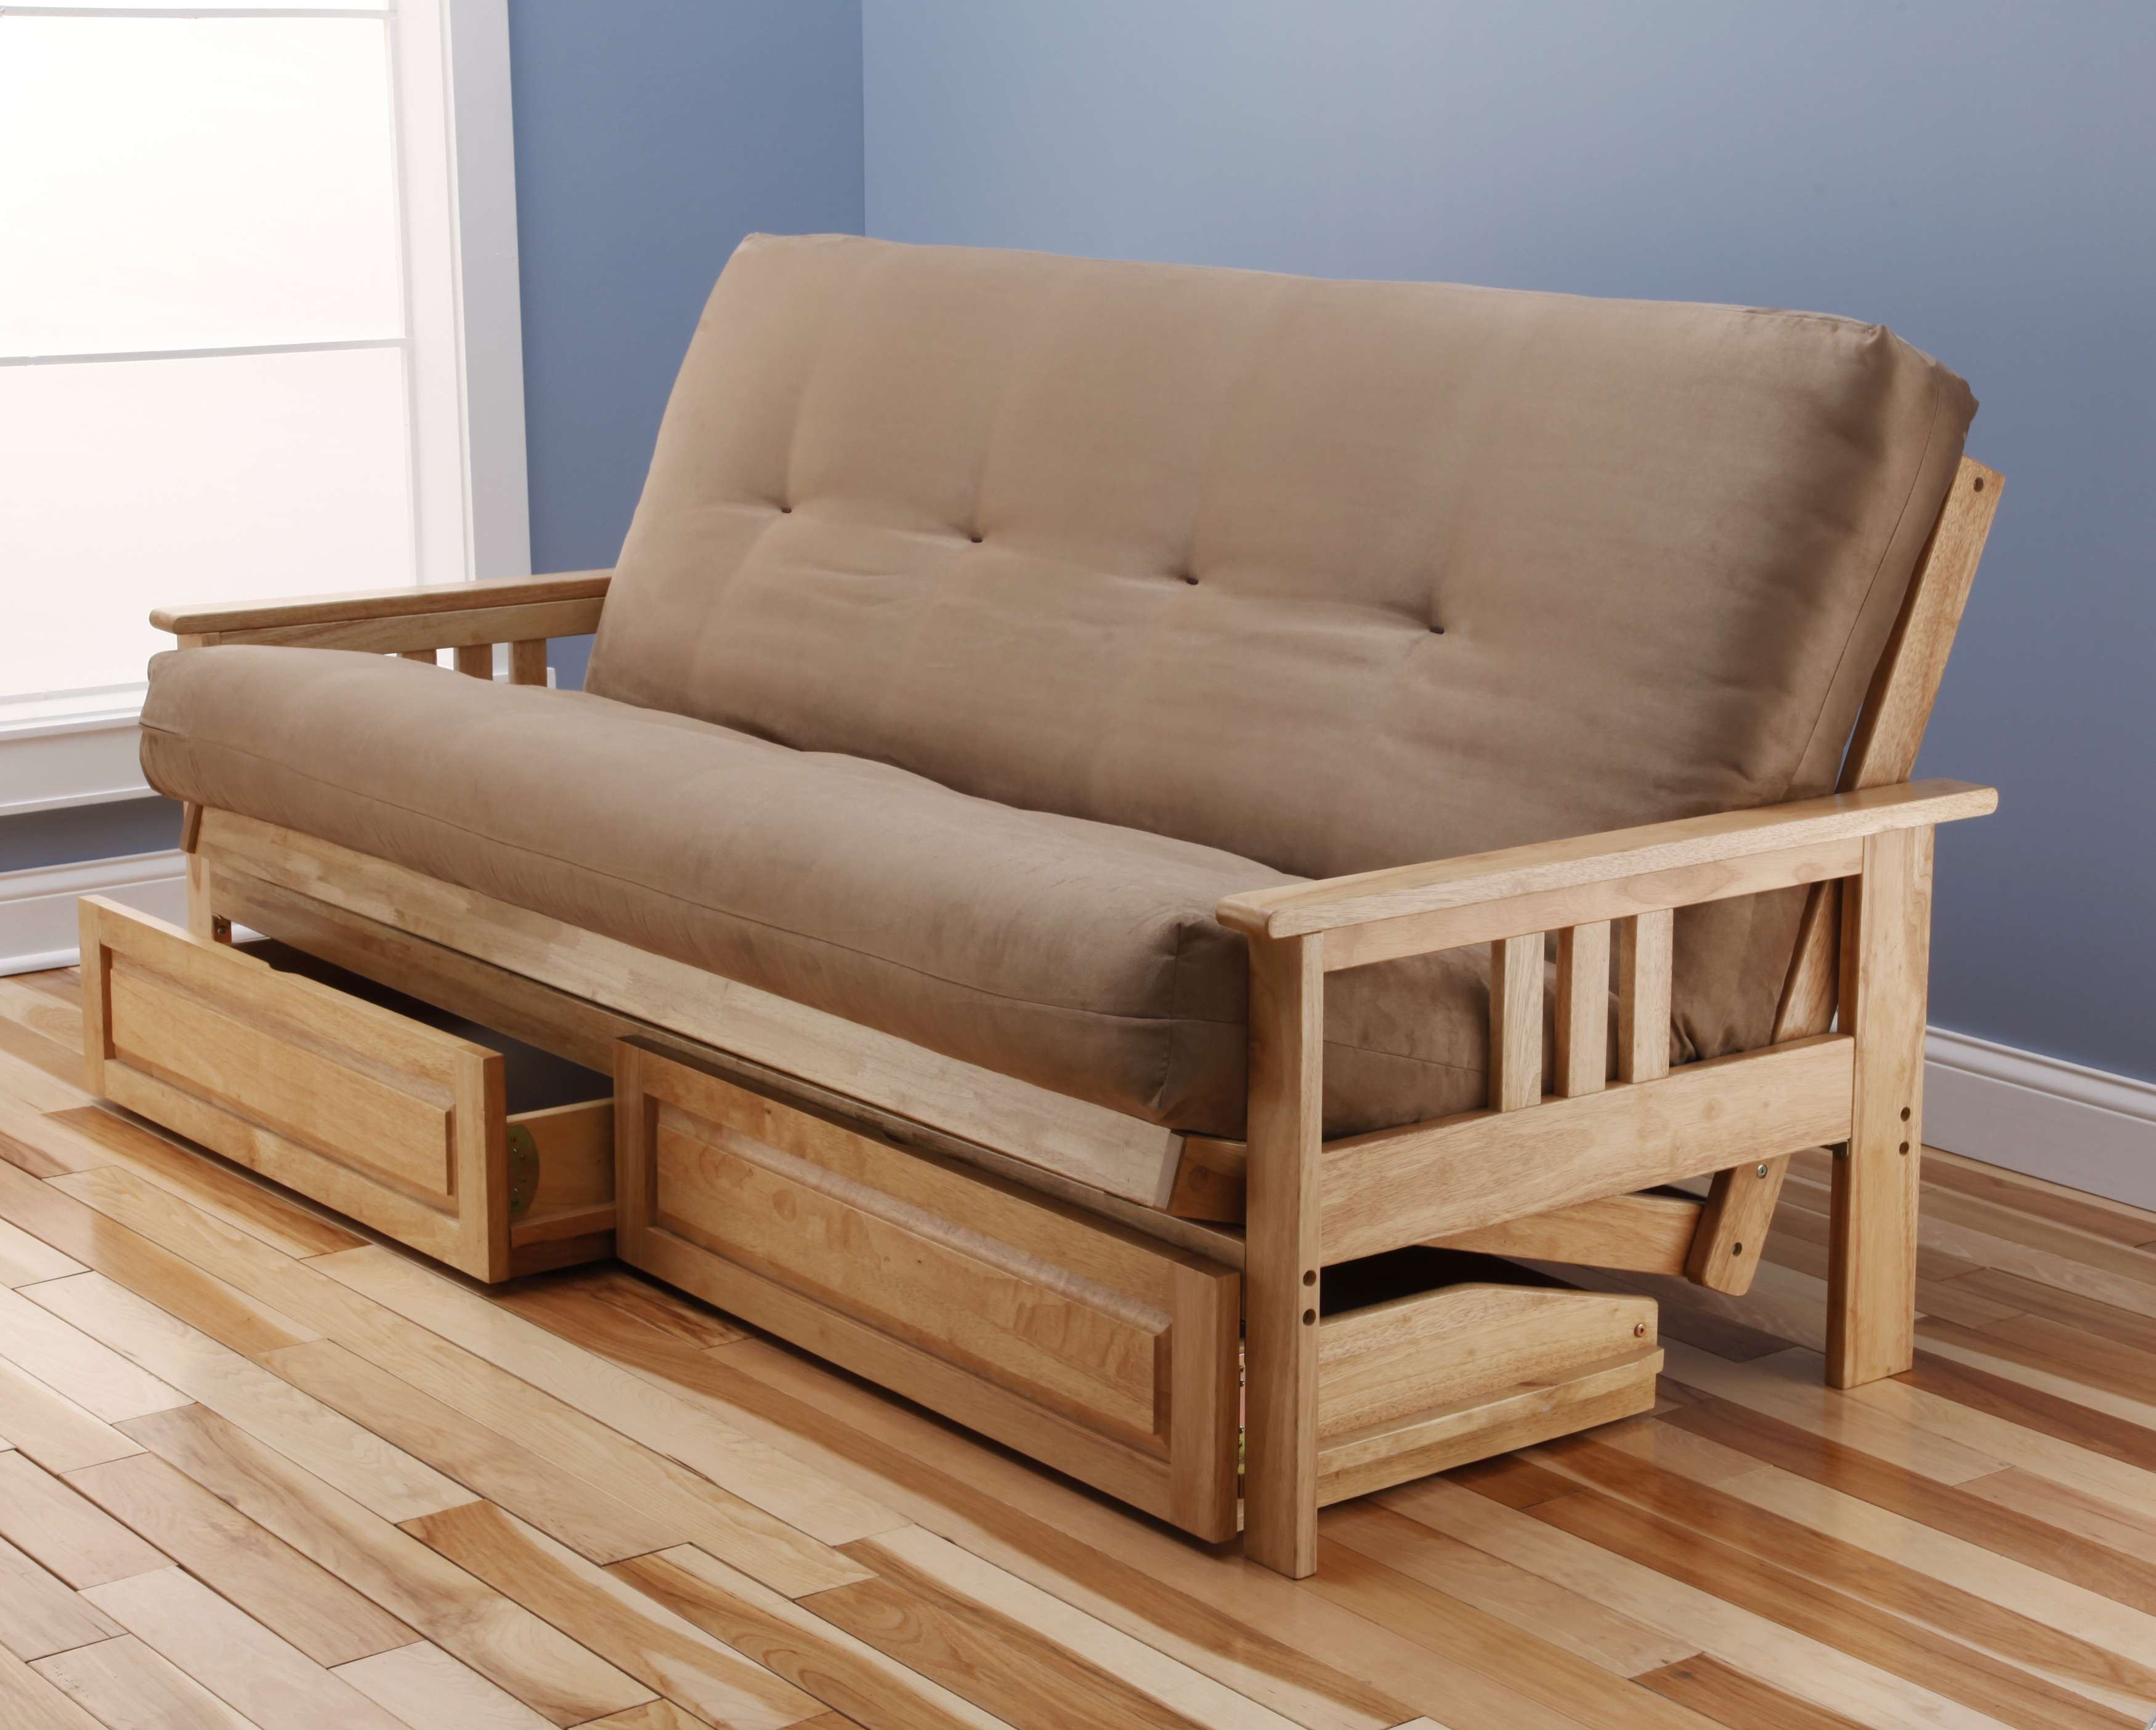 Monterey Natural Full Futon Frame with Suede Peat Mattress and Storage Drawers